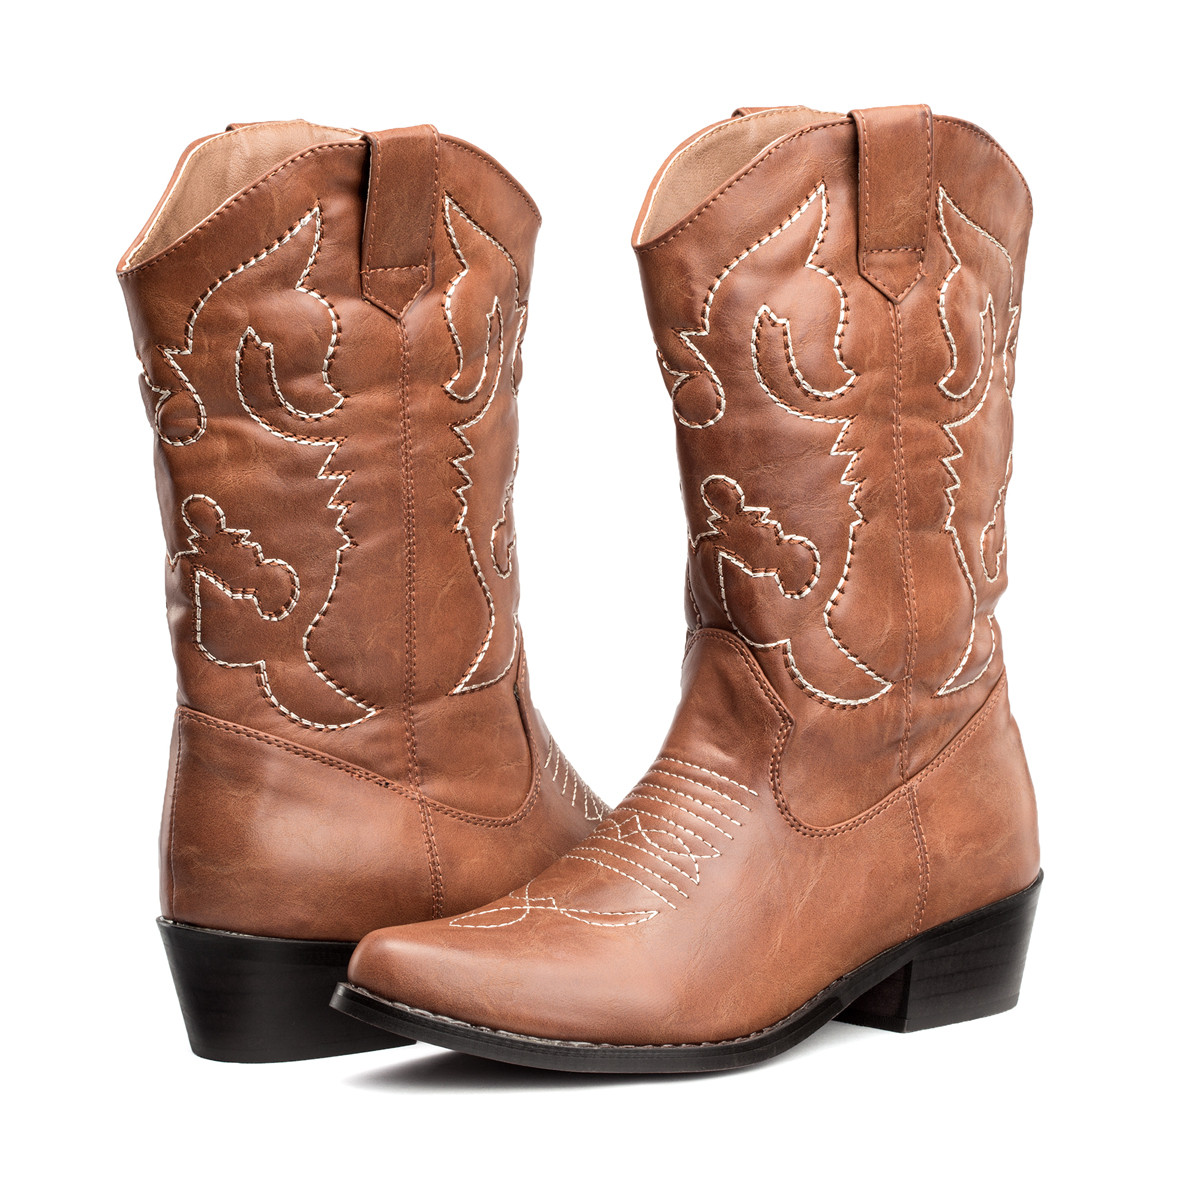 Details about SheSole Womens Ladies Cowgirl Cowboy Boots Western Mid Wide  Calf Winter Shoes